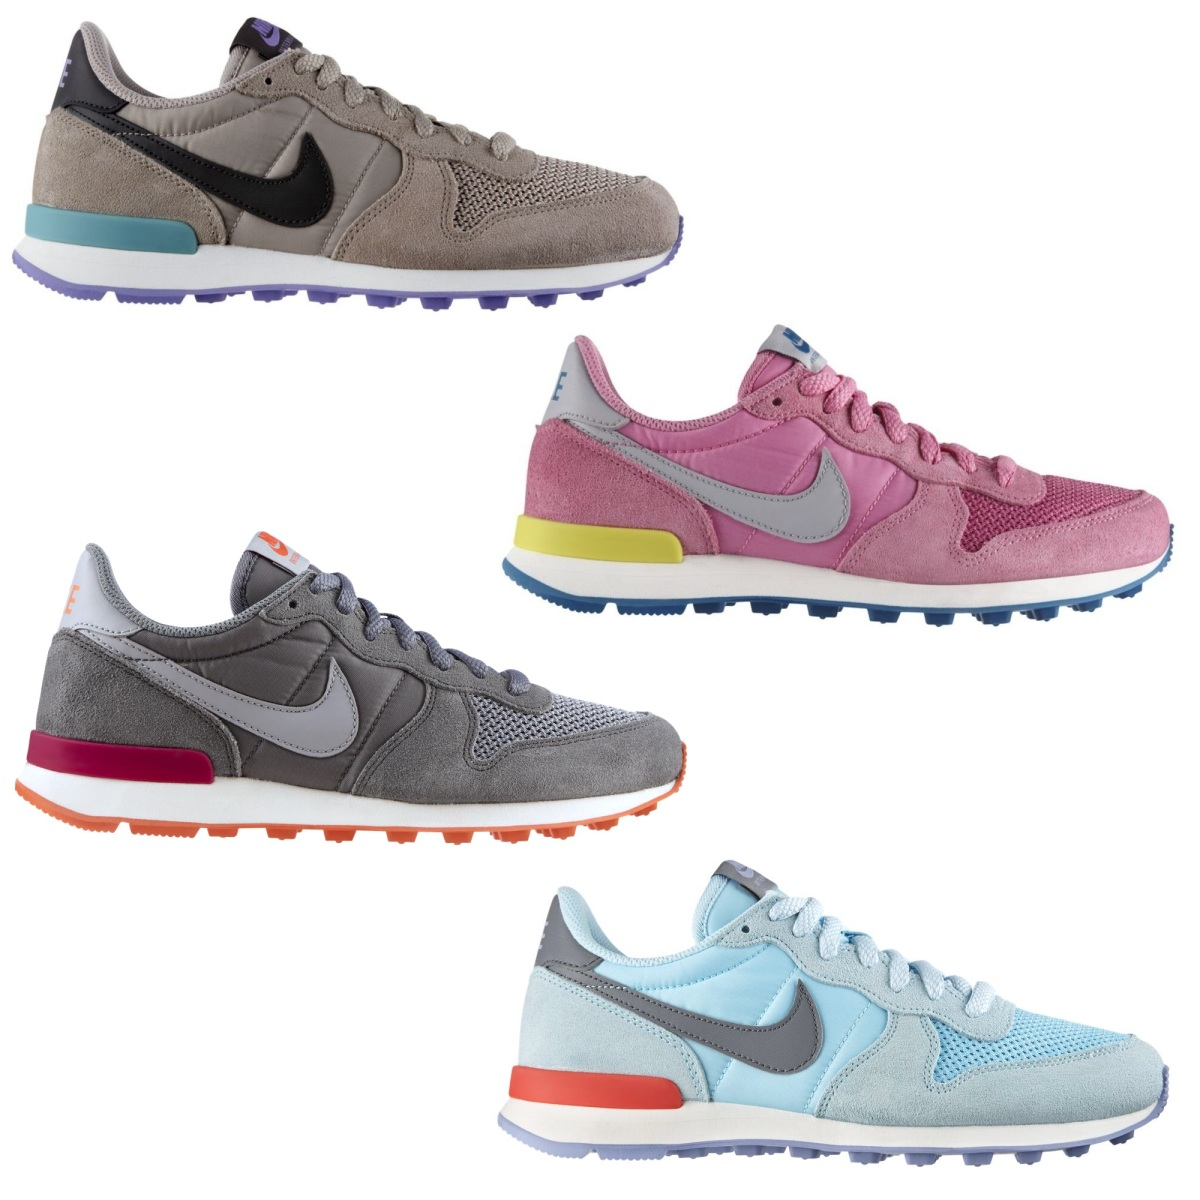 nike internationalist schuhe turnschuhe sneaker damen wildleder diverse farben ebay. Black Bedroom Furniture Sets. Home Design Ideas